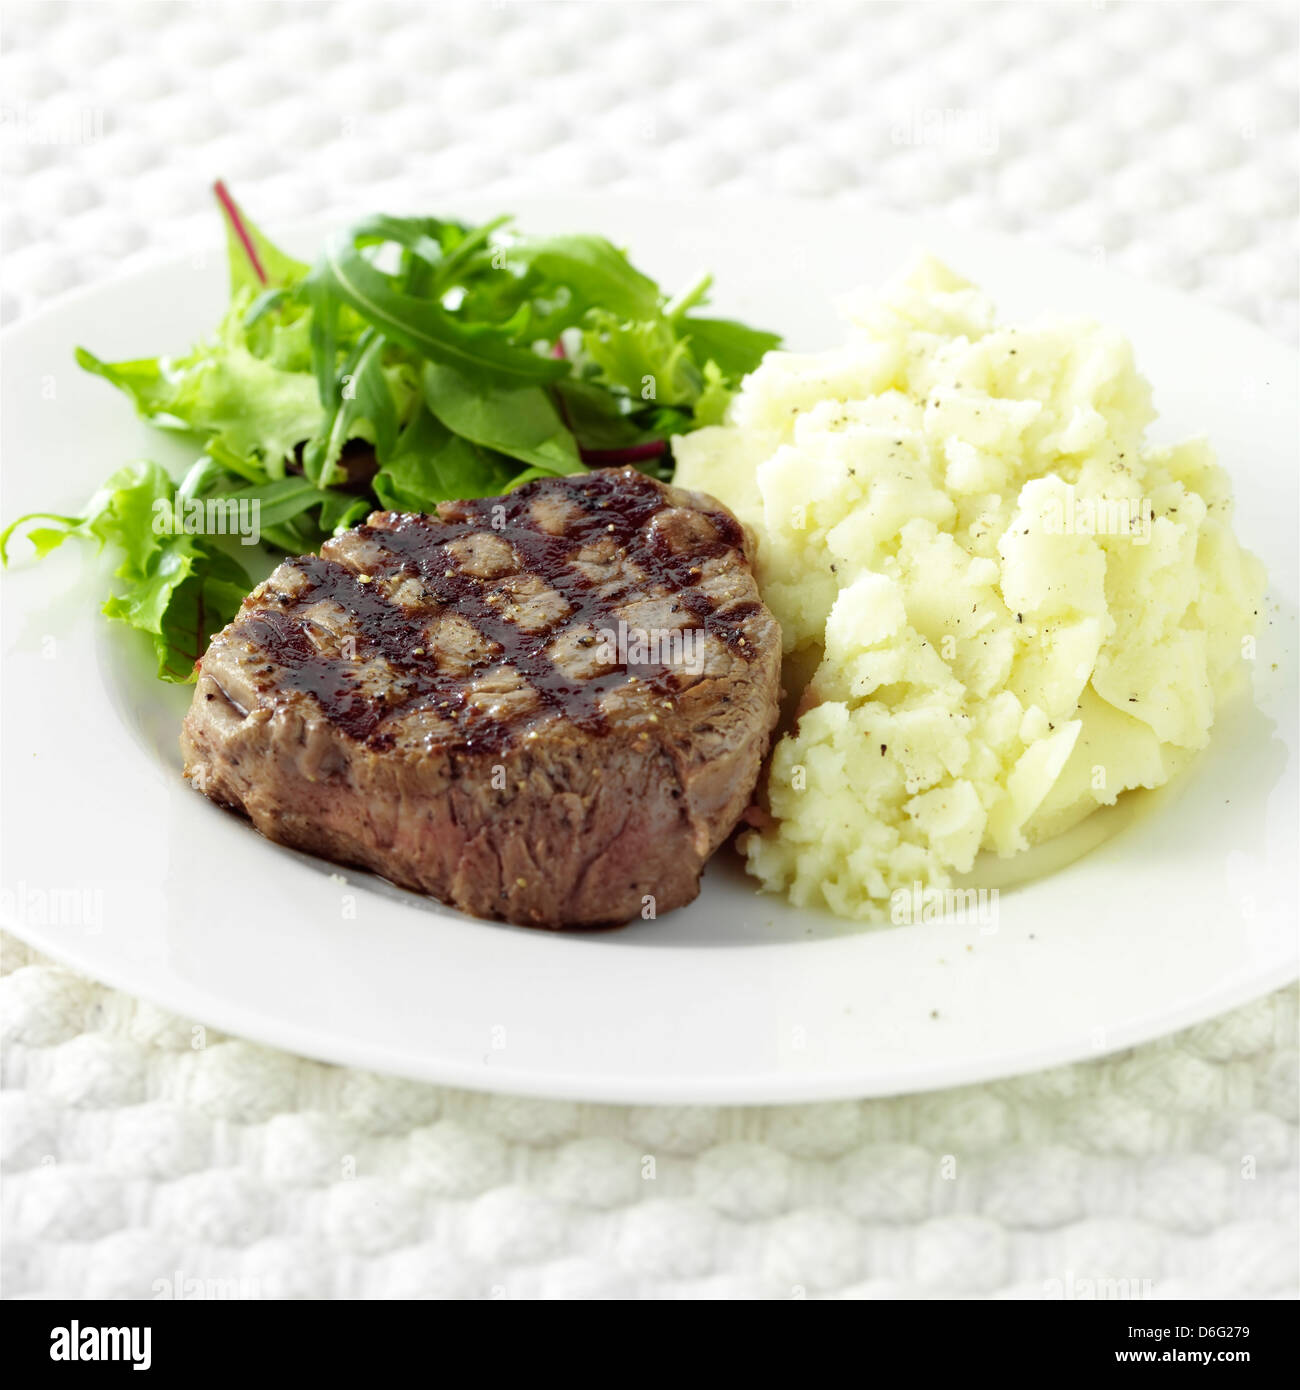 Fillet Steak and Mashed Potato - Stock Image